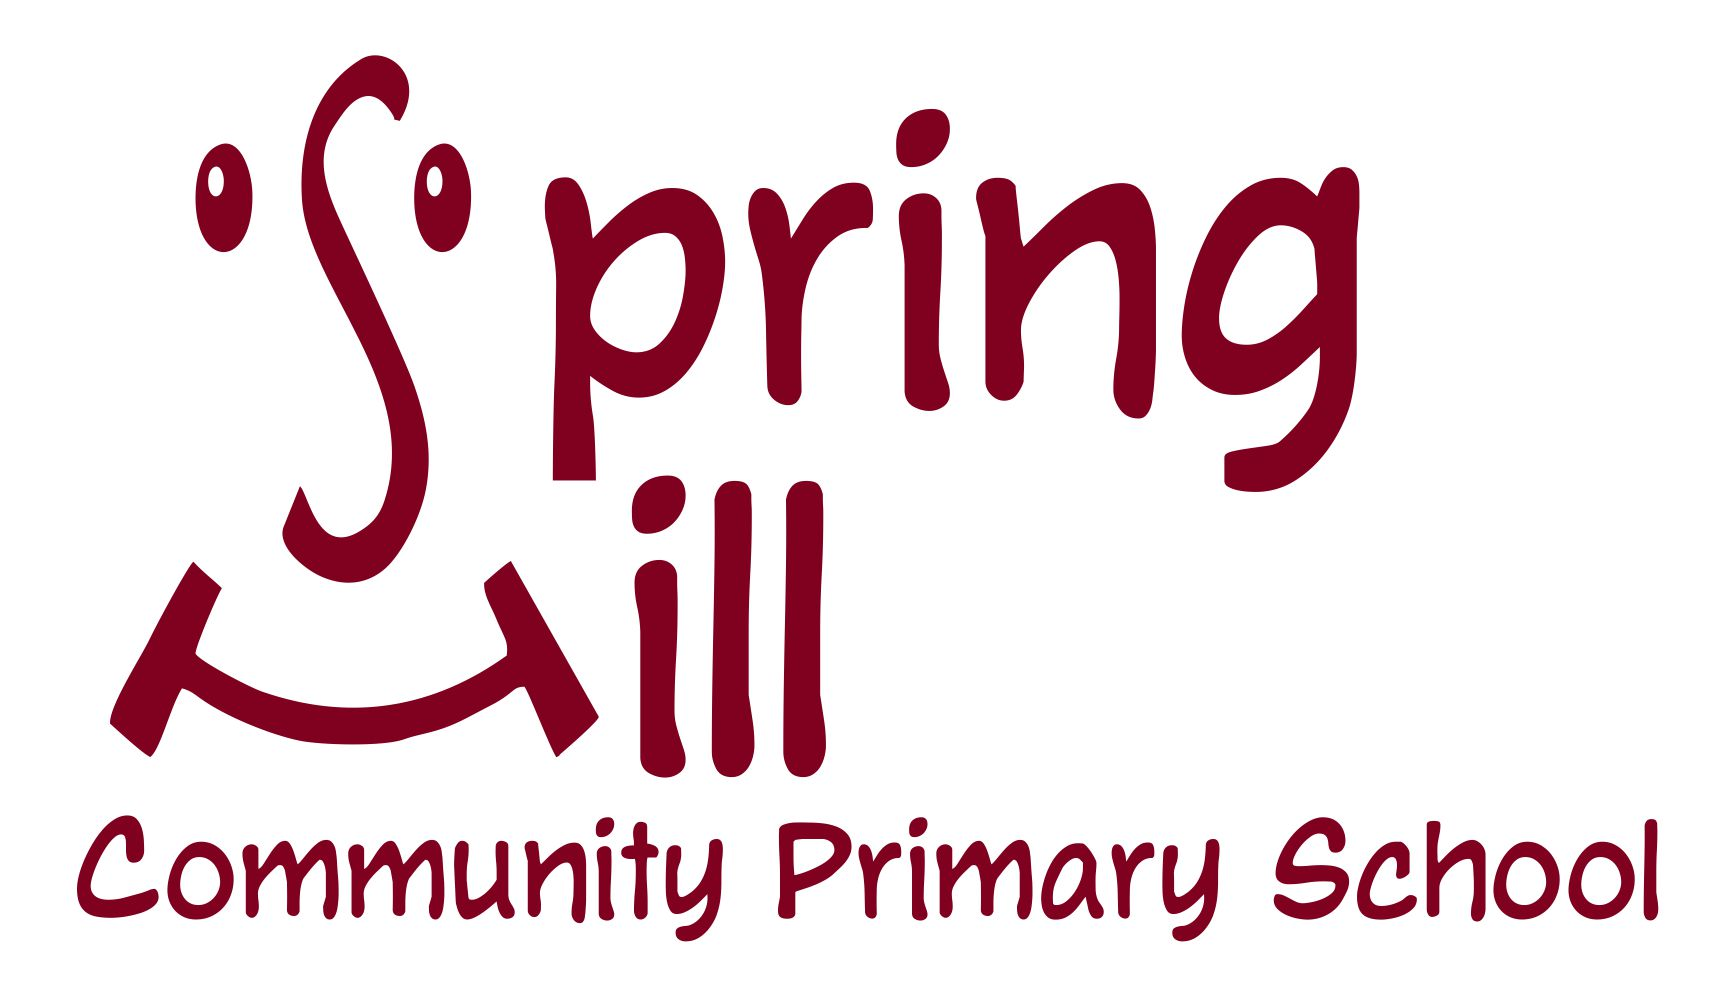 Accrington Spring Hill Community Primary School logo